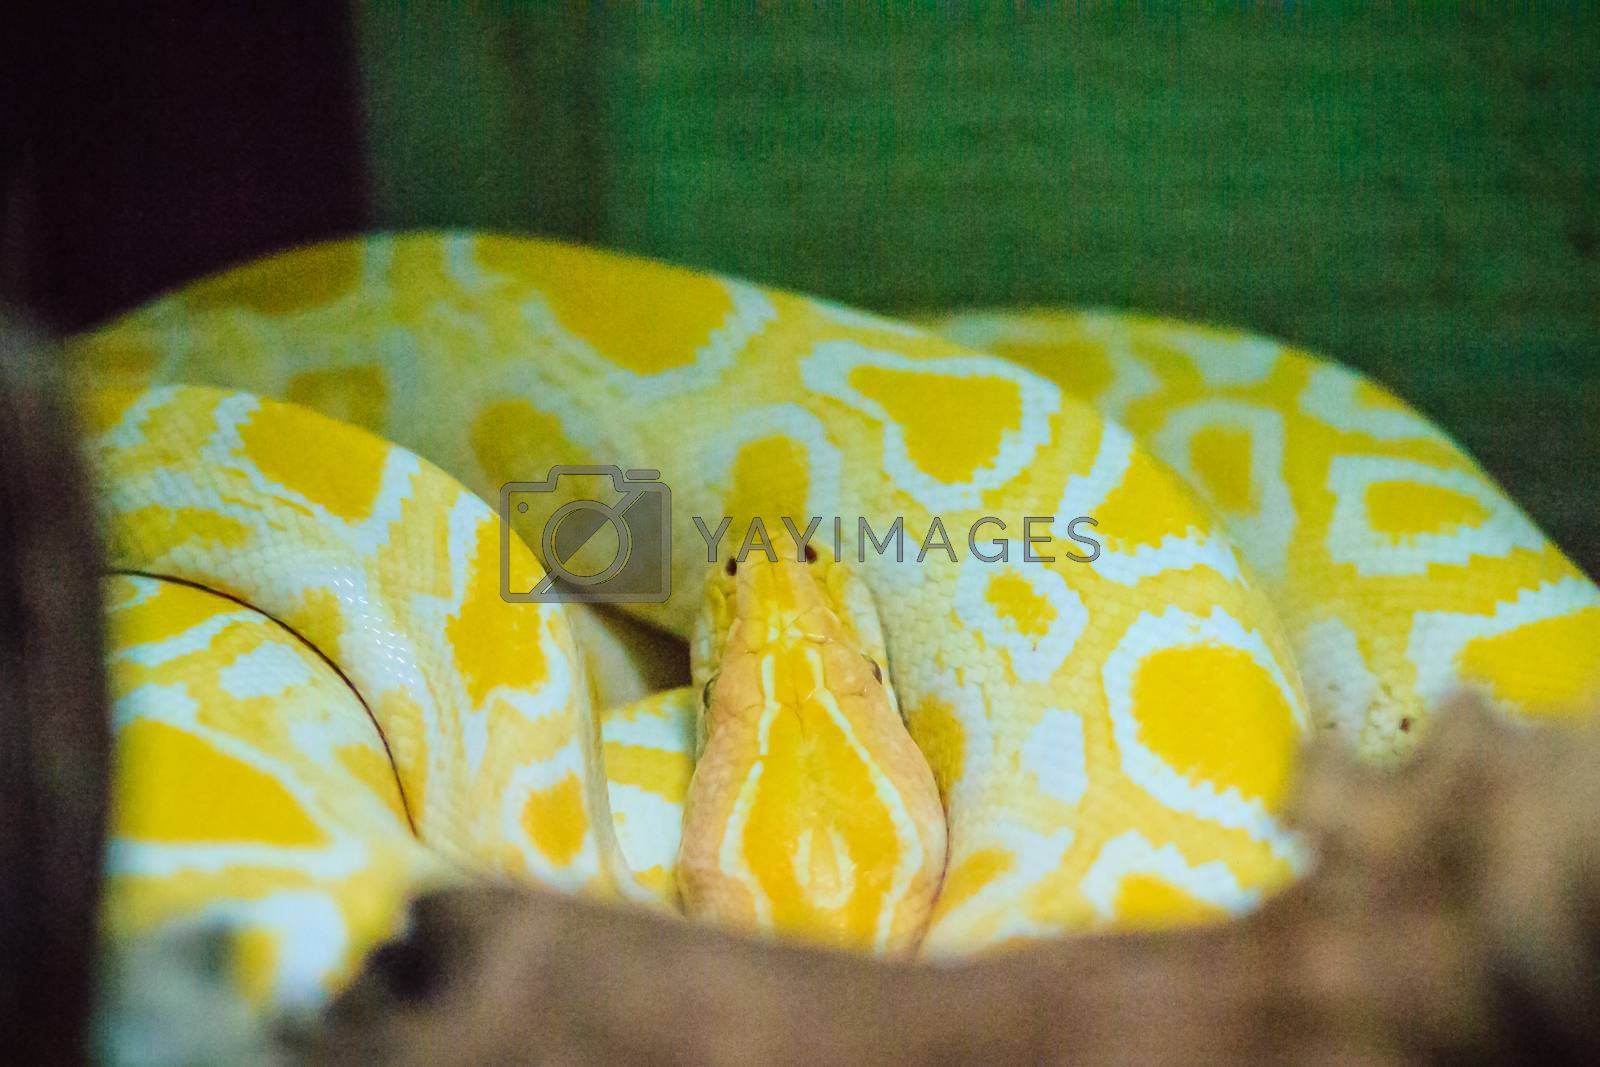 Albino Burmese python (Python bivittatus) is one of the five largest species of snakes in the world It is native to a large area of tropical South and Southeast Asia.